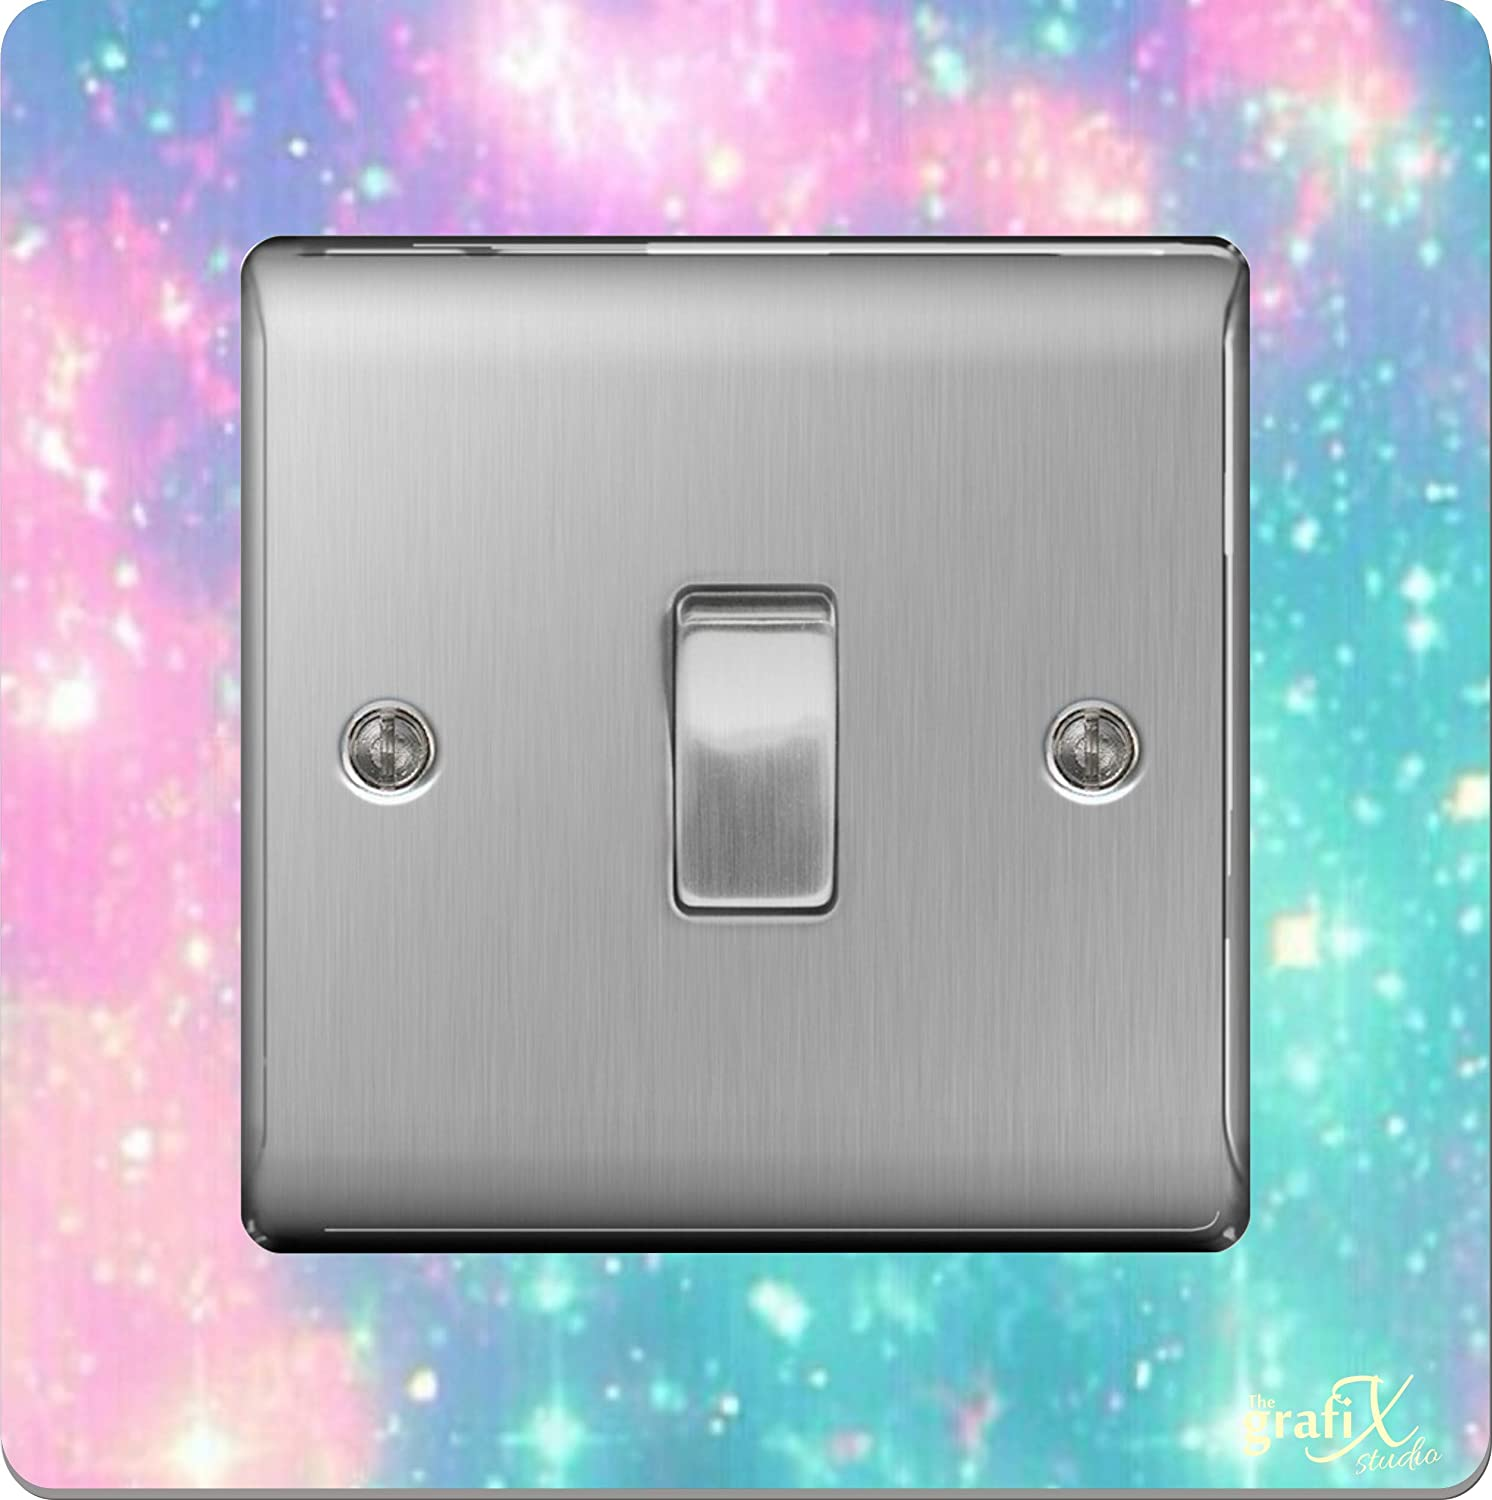 the sticker studio ltd Single Light Switch/Socket Surround Acrylic Finger Plate Pretty Stars sr24